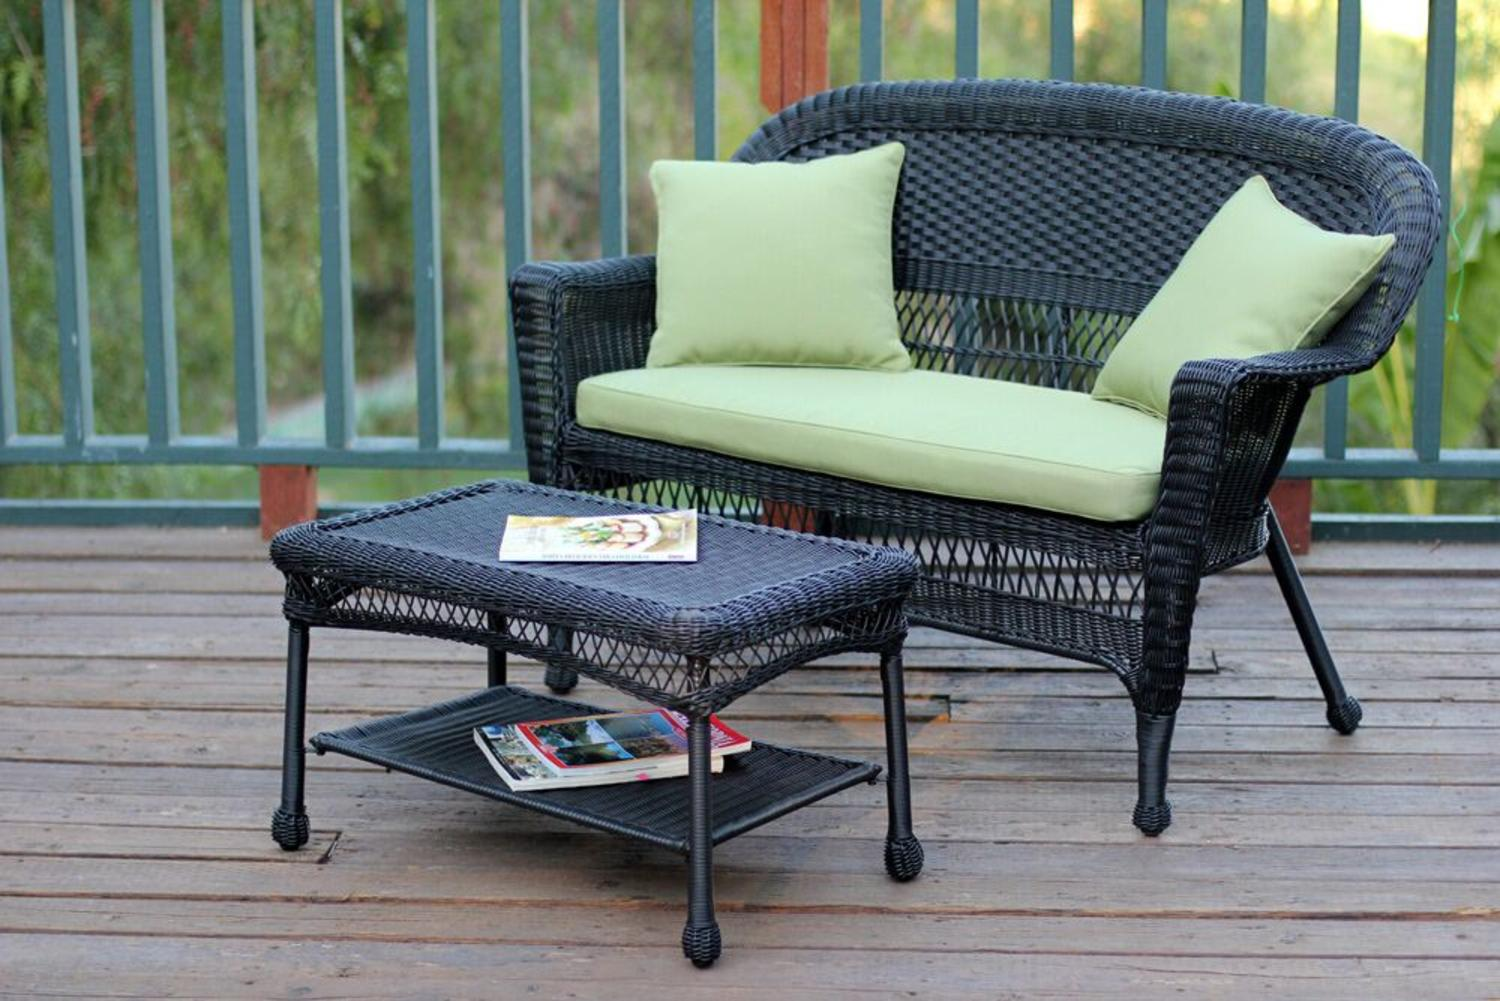 2-Piece Oswald Black Resin Wicker Patio Loveseat and Coffee Table Set Green Cushion by Resin Furniture